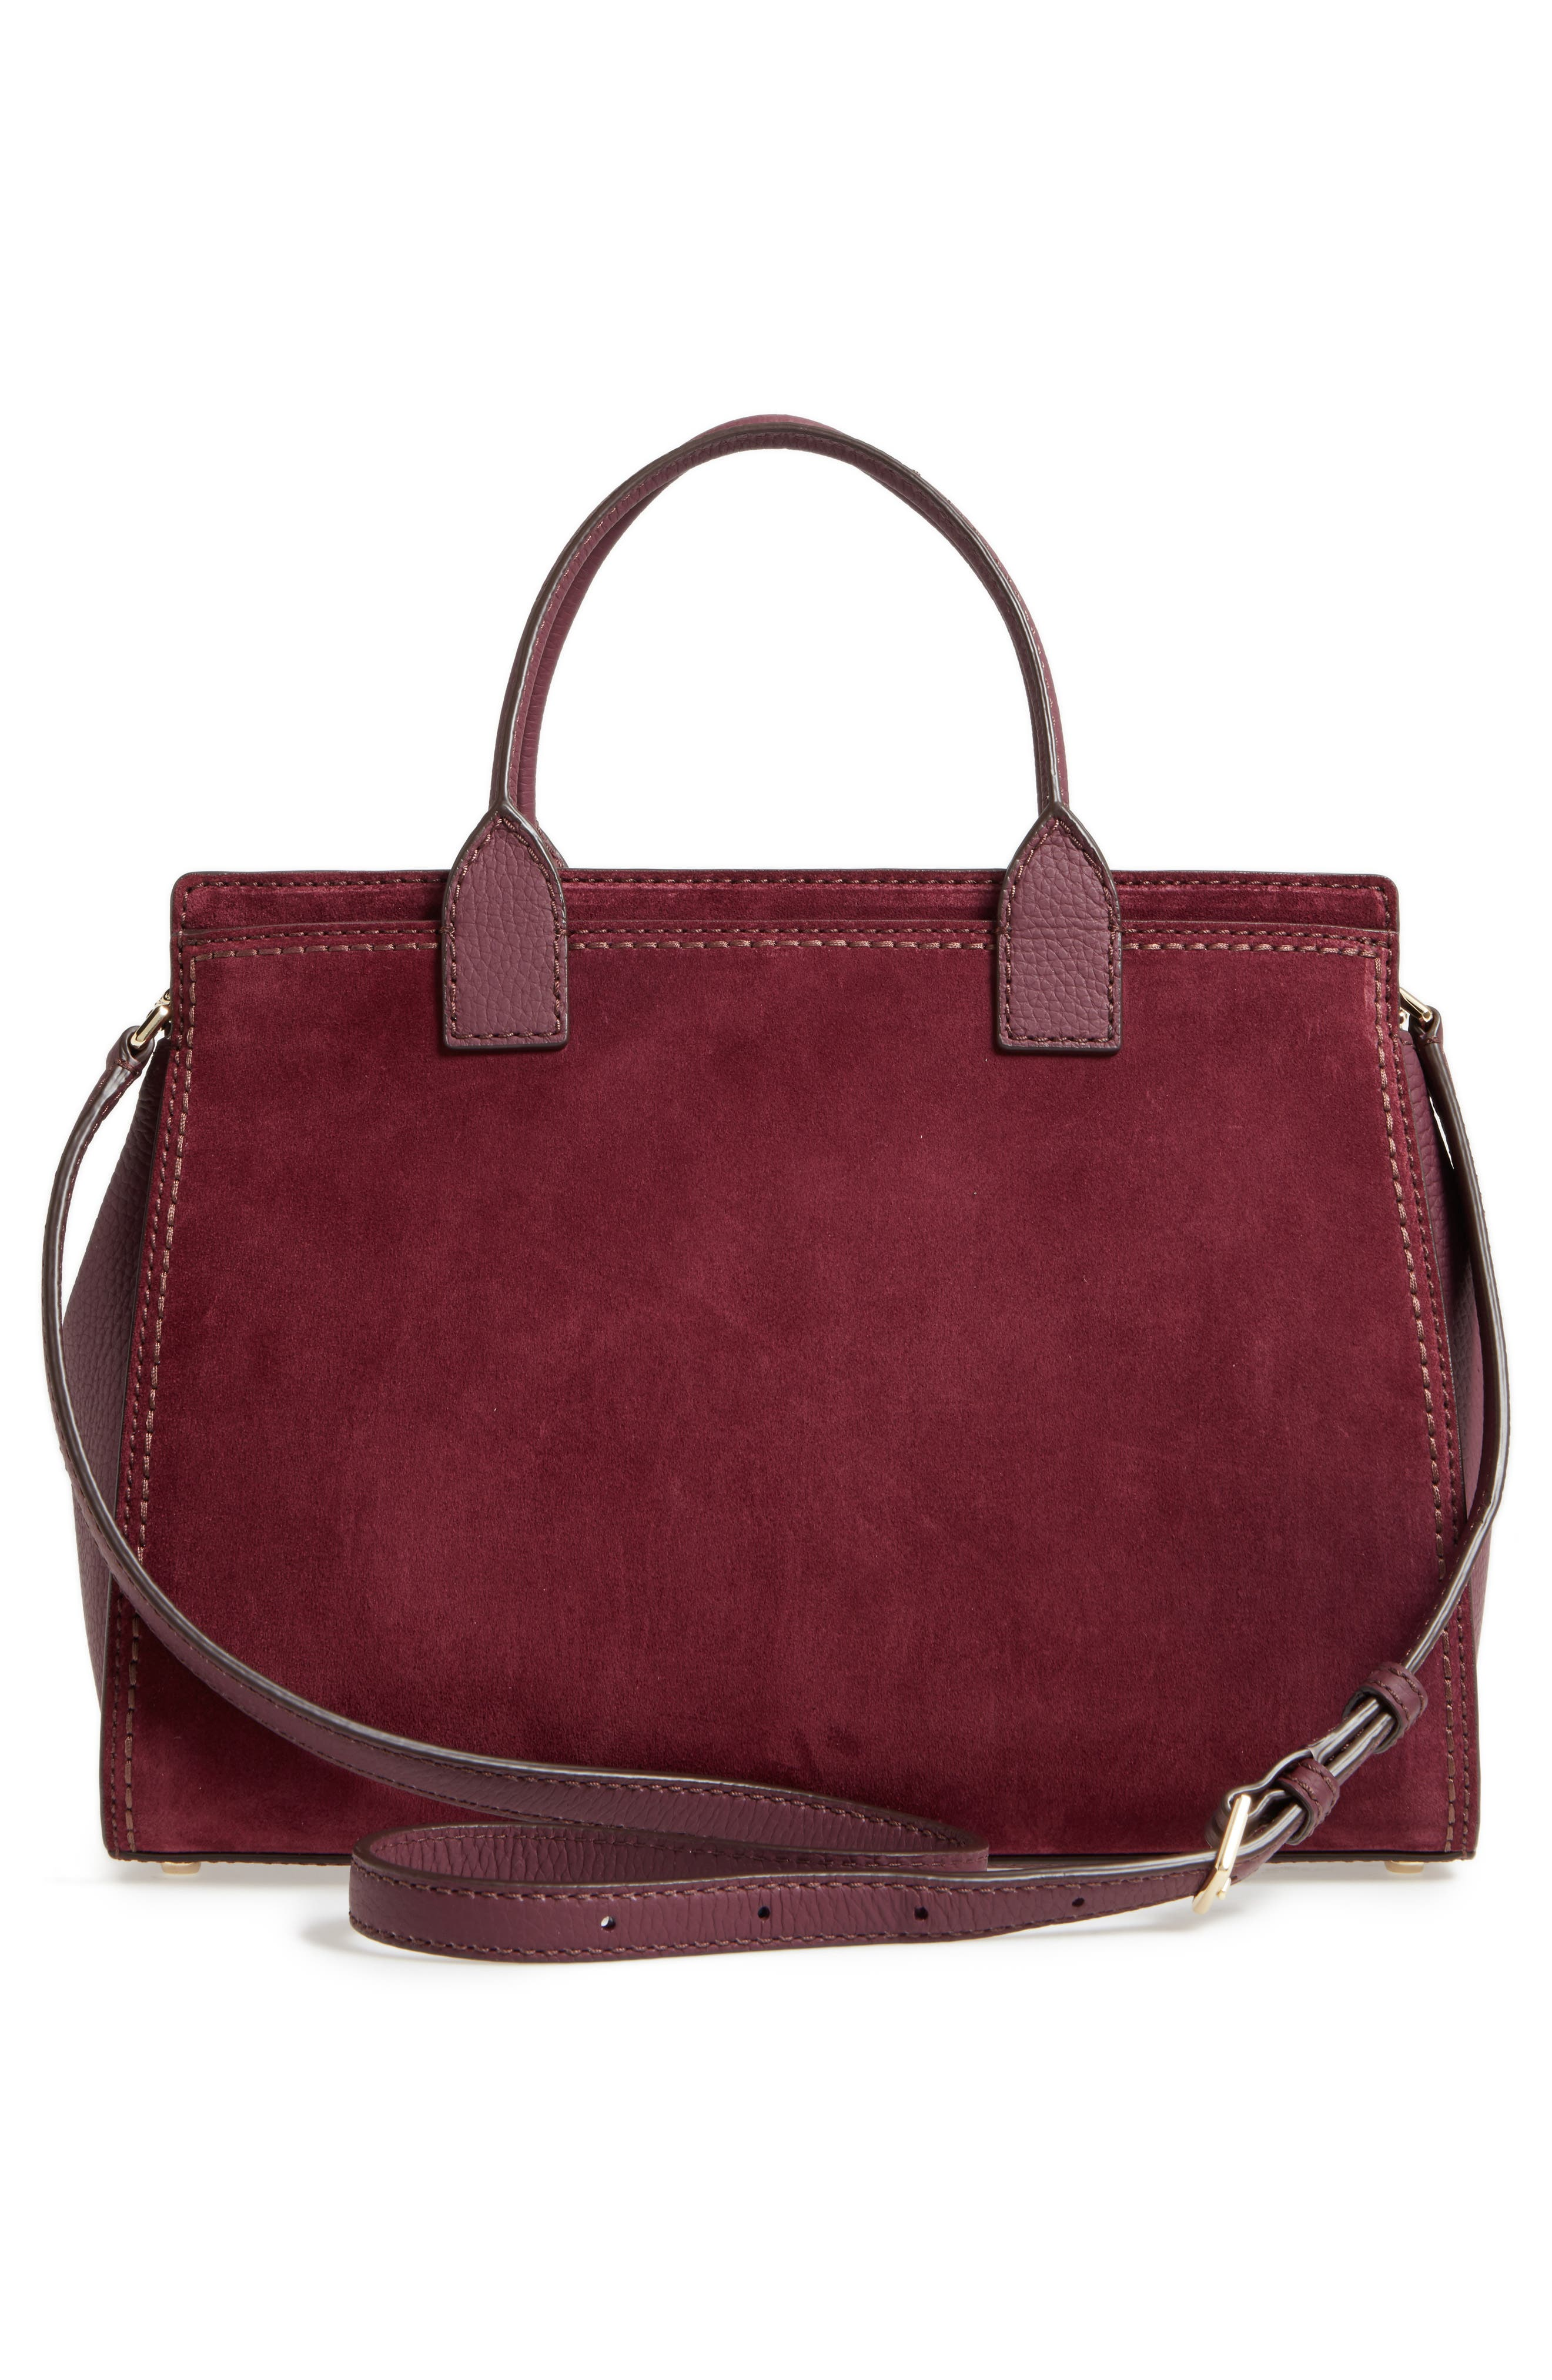 dunne lane lake suede satchel,                             Alternate thumbnail 3, color,                             Deep Wine